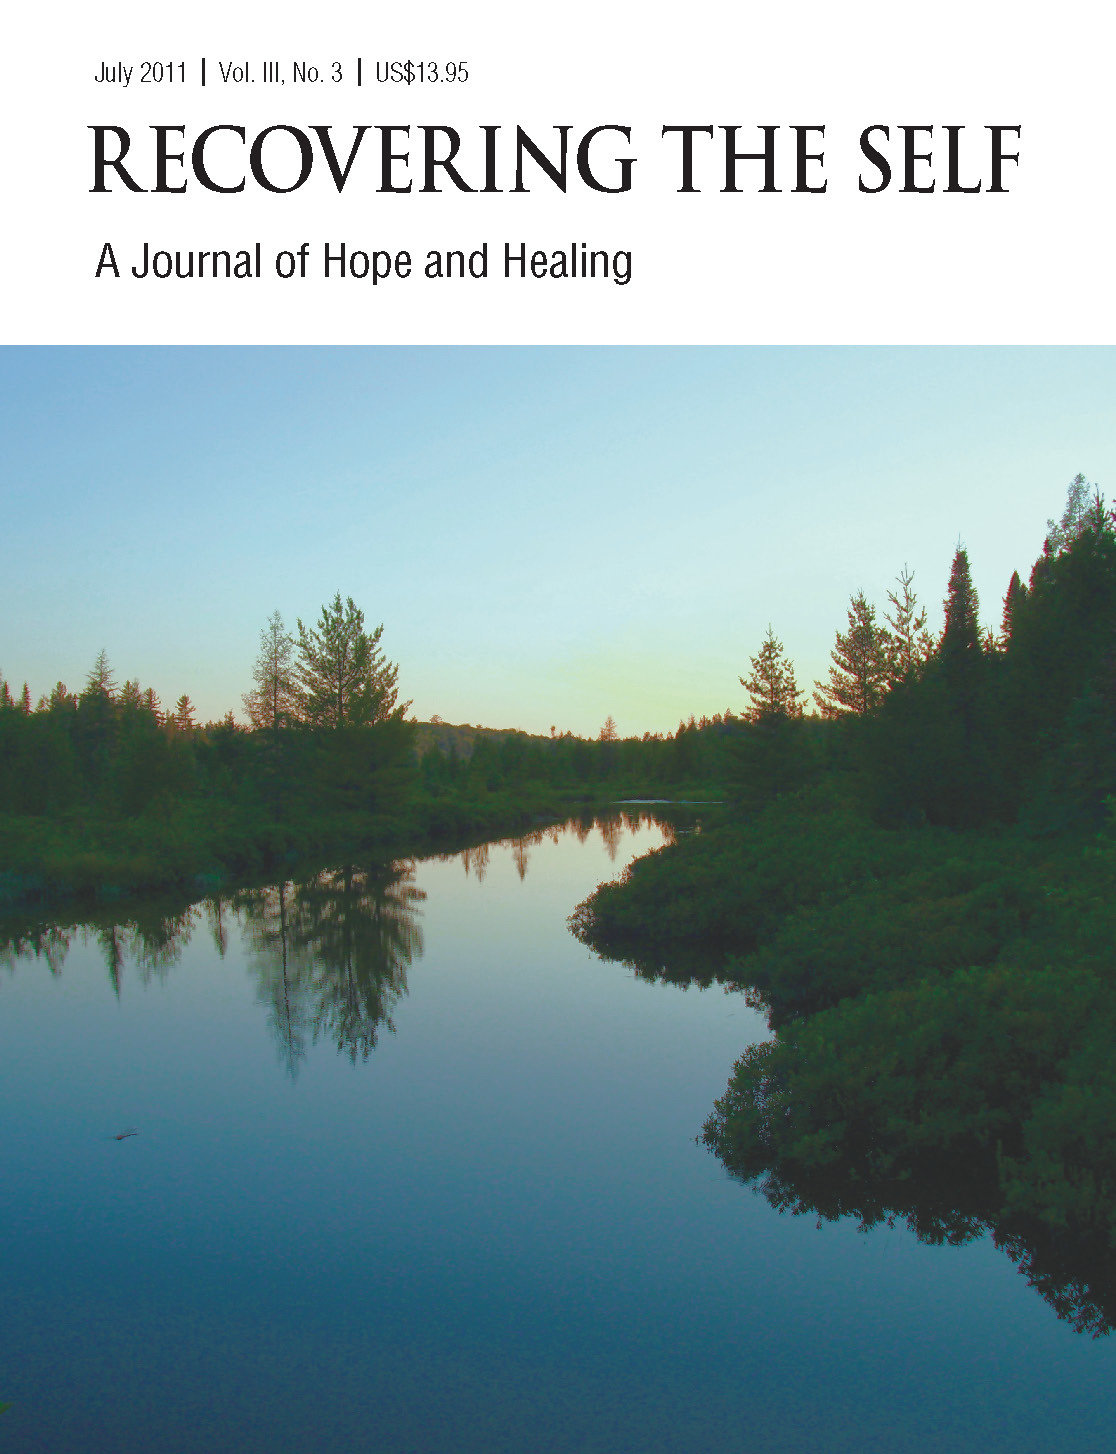 Recovering The Self: A Journal of Hope and Healing (Vol. III, No. 3) -- Focus on Health 978-1-61599-105-1